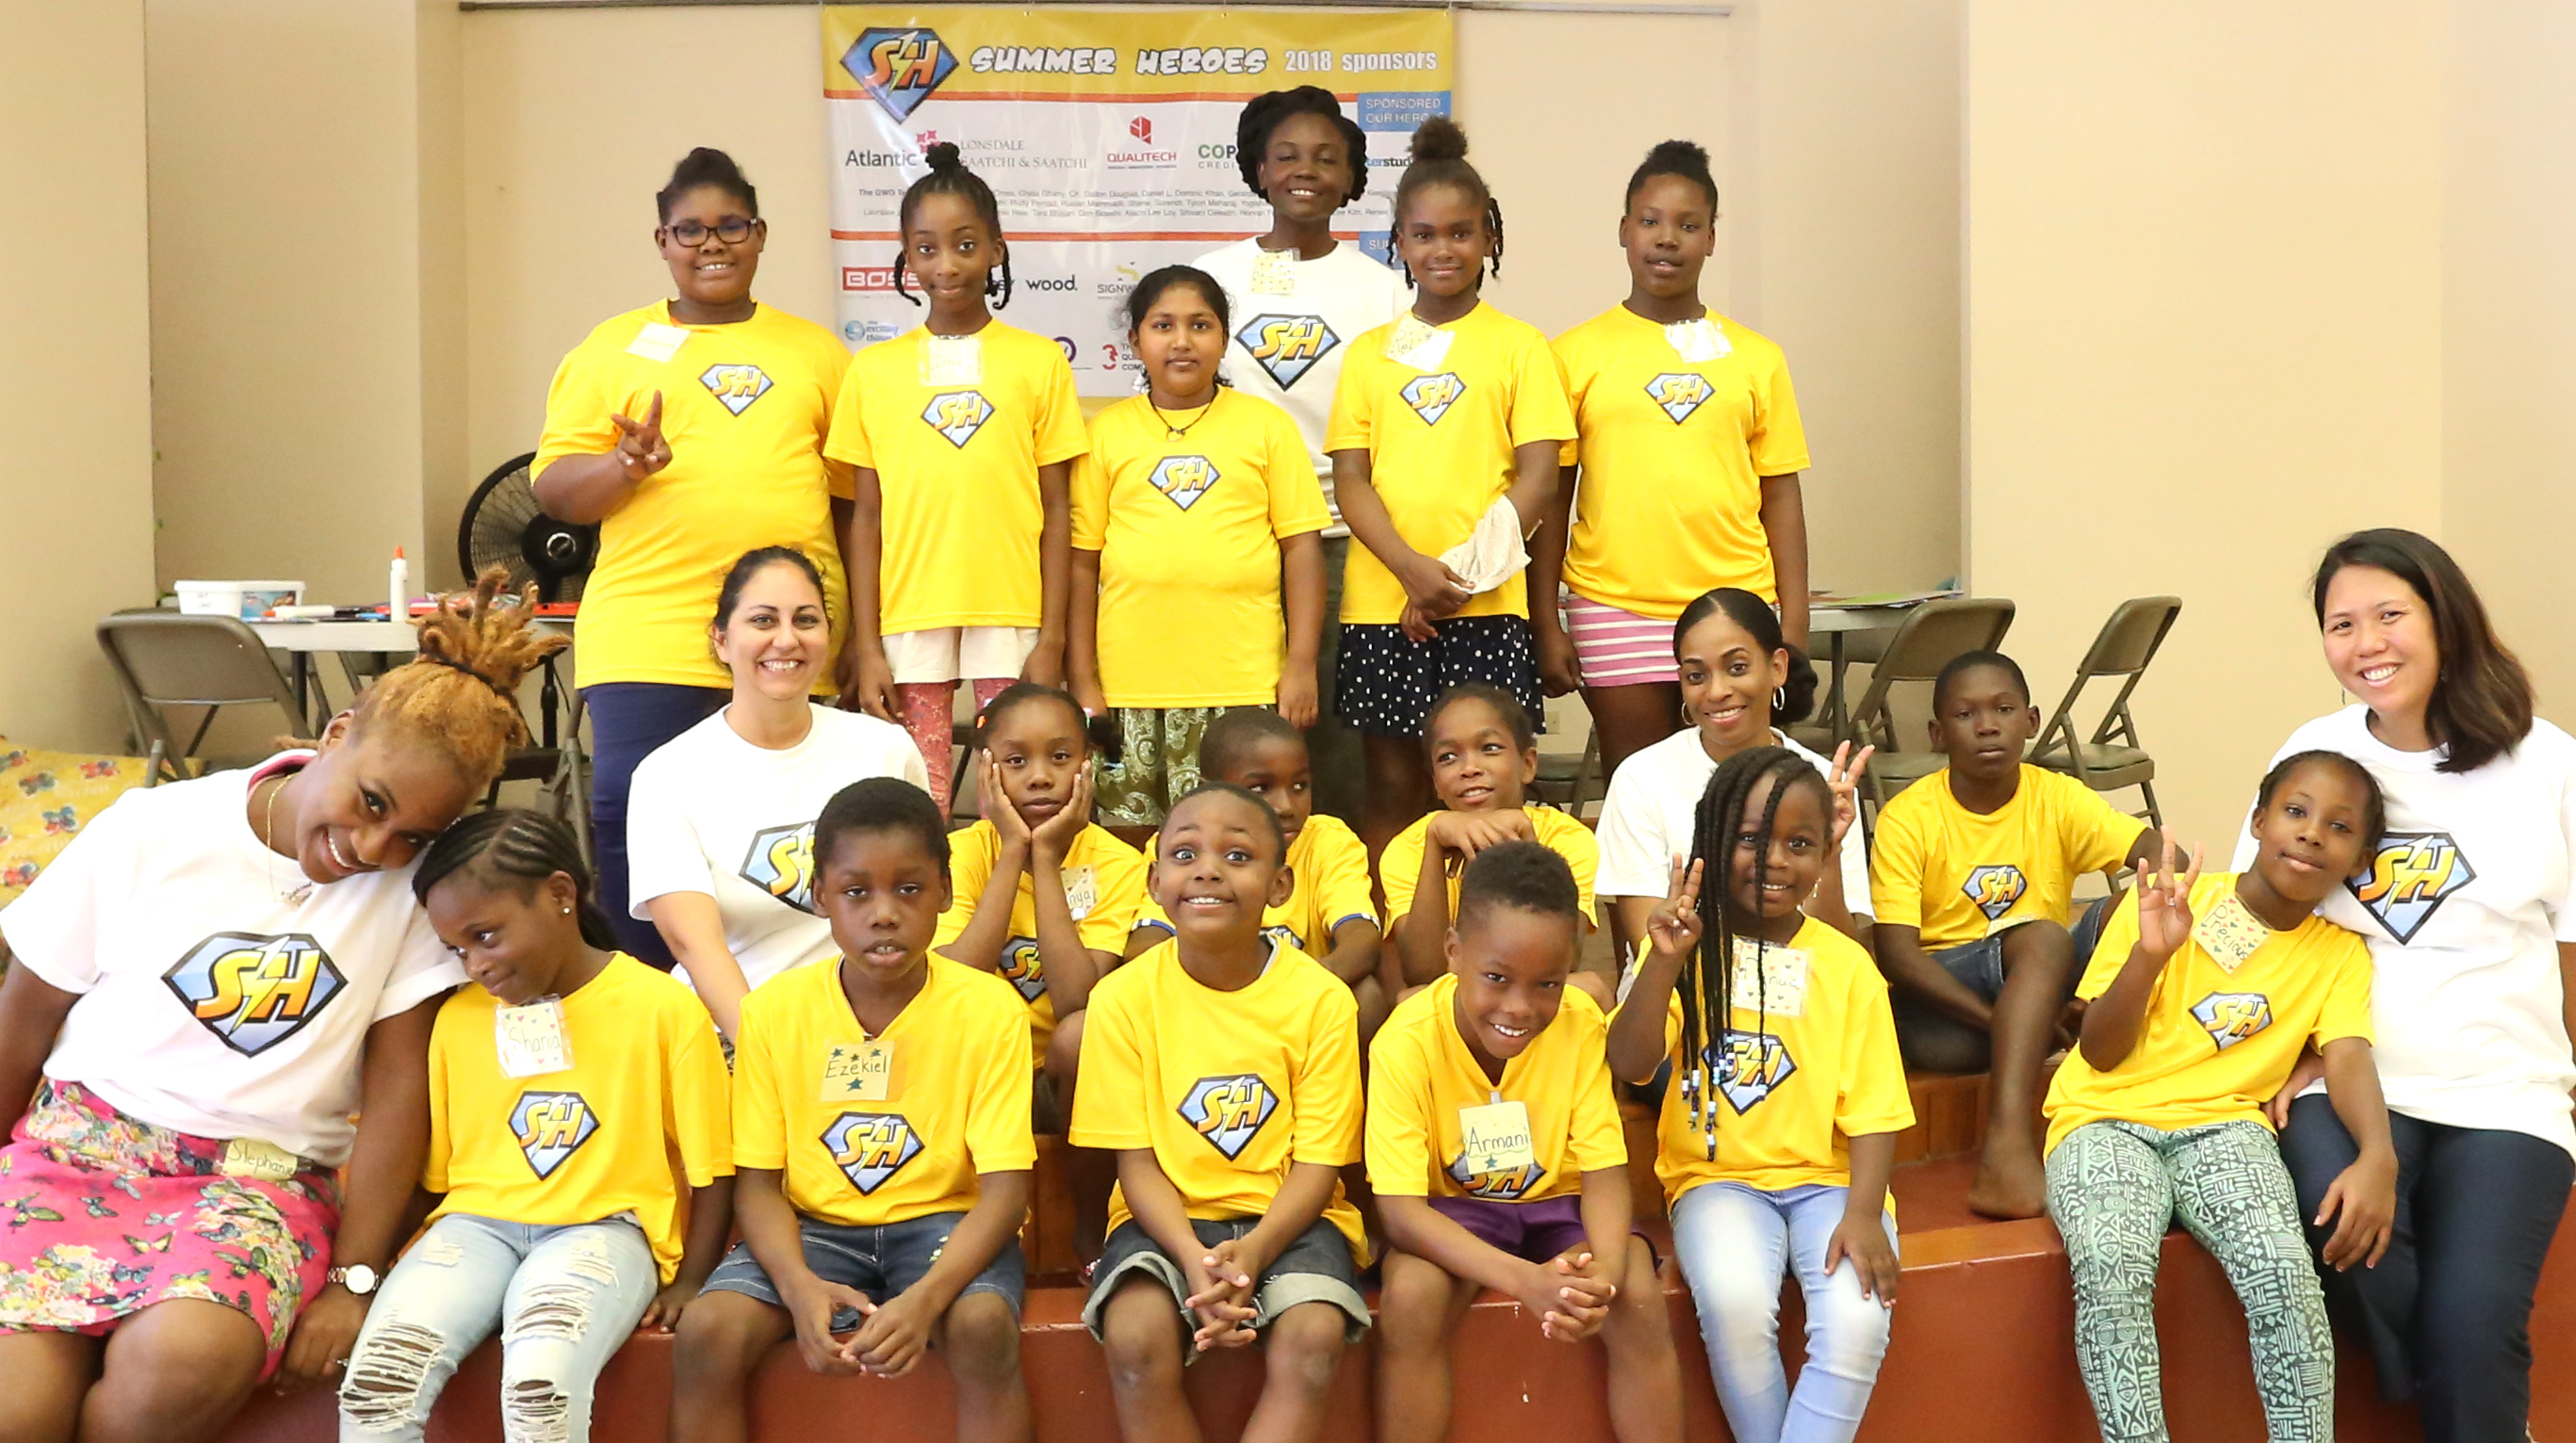 Summer Heroes Camp Jaime Lee Loy to the far right and volunteers Back to Front left to right include Akilah Edwards Stephanie James Shana Bhajan Petra McLeod